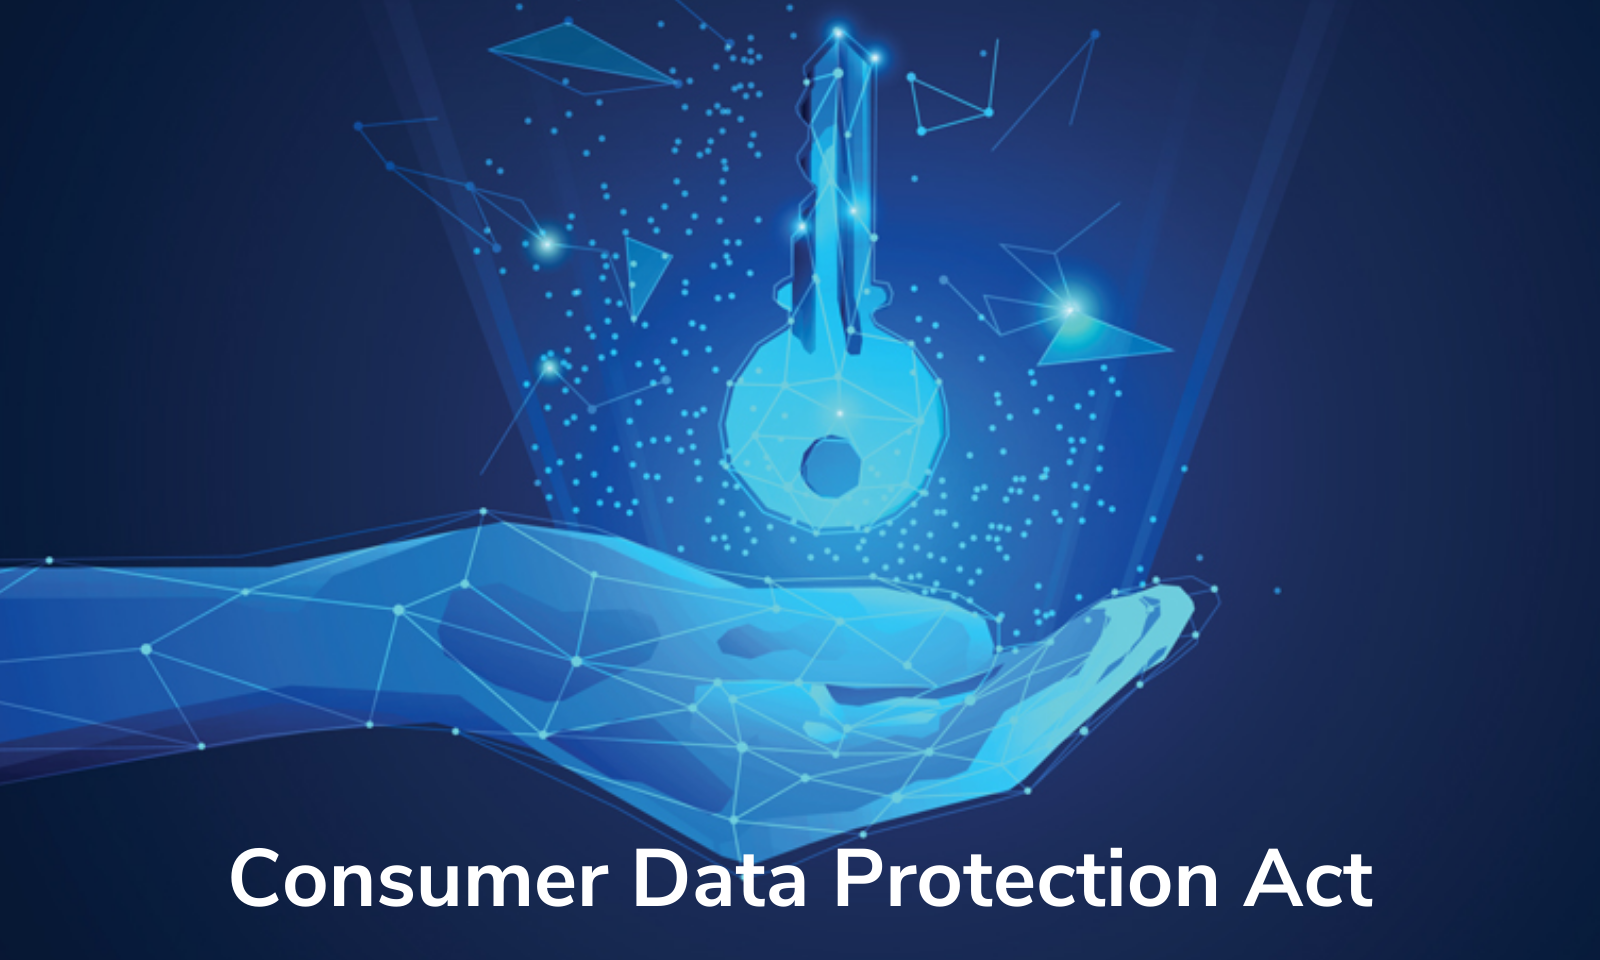 Consumer Data Protection Act